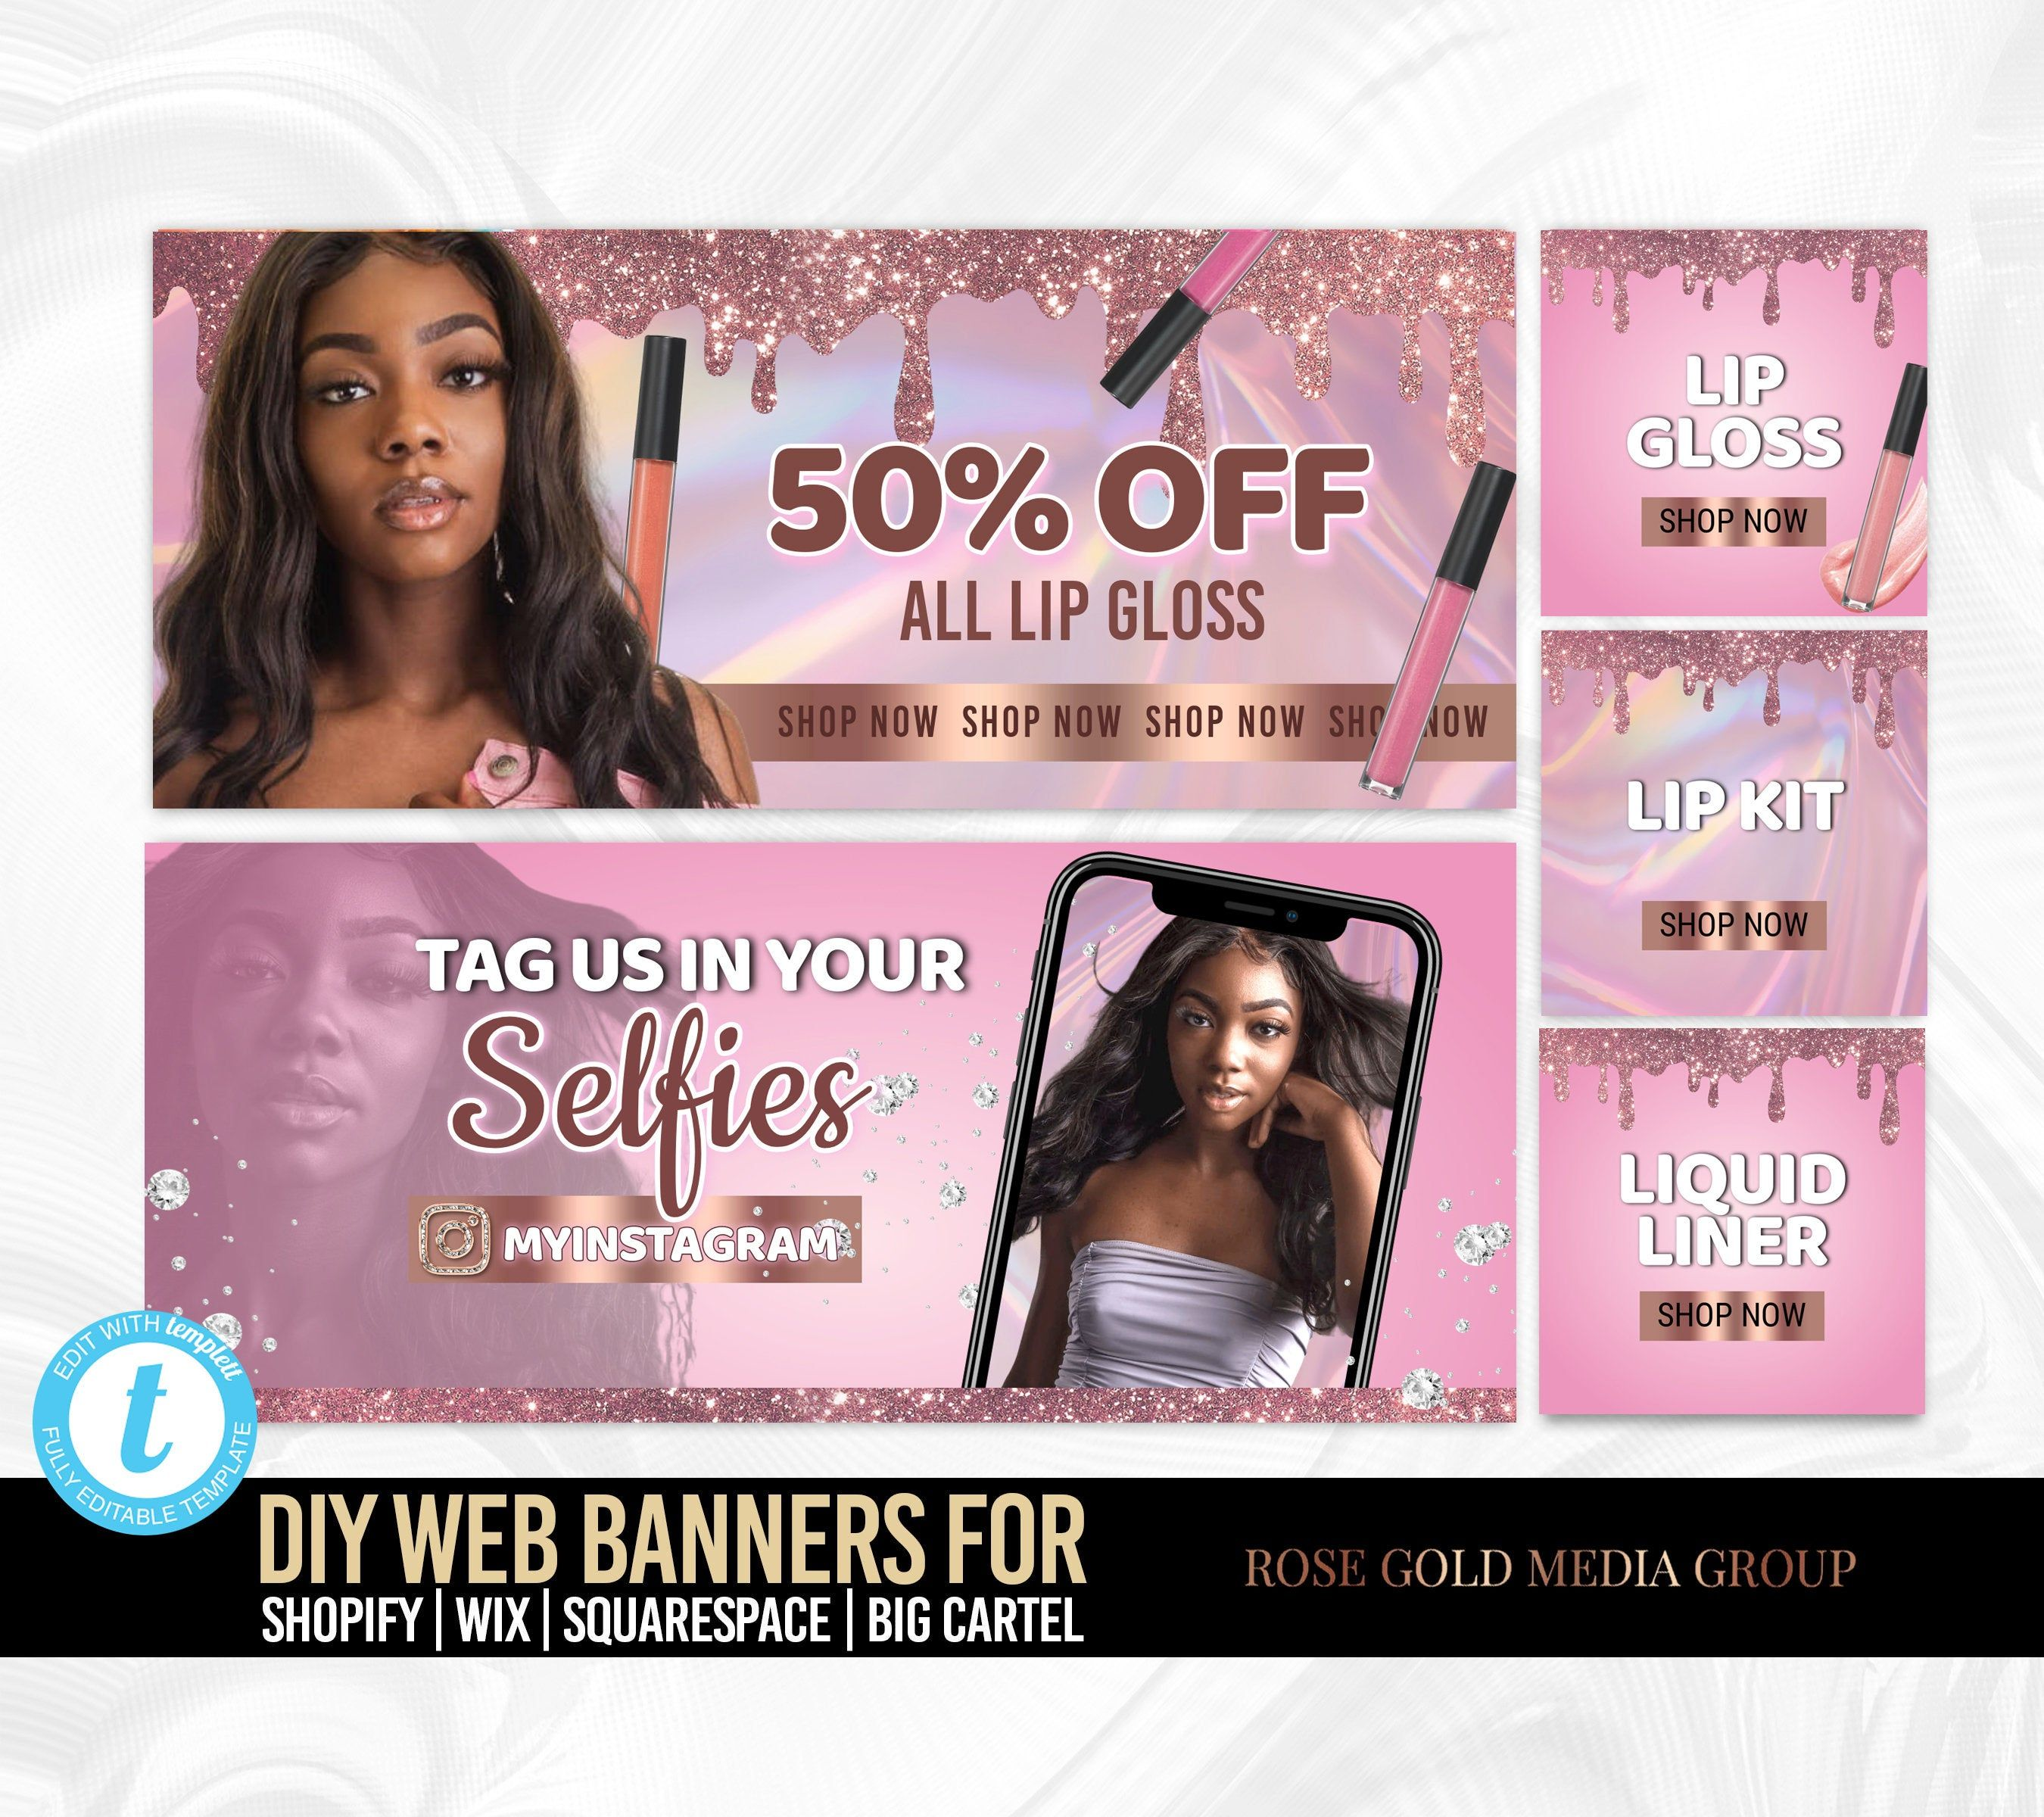 Gold black Hair Brand DIY Web banners Add web banners to your Shopify or wix website